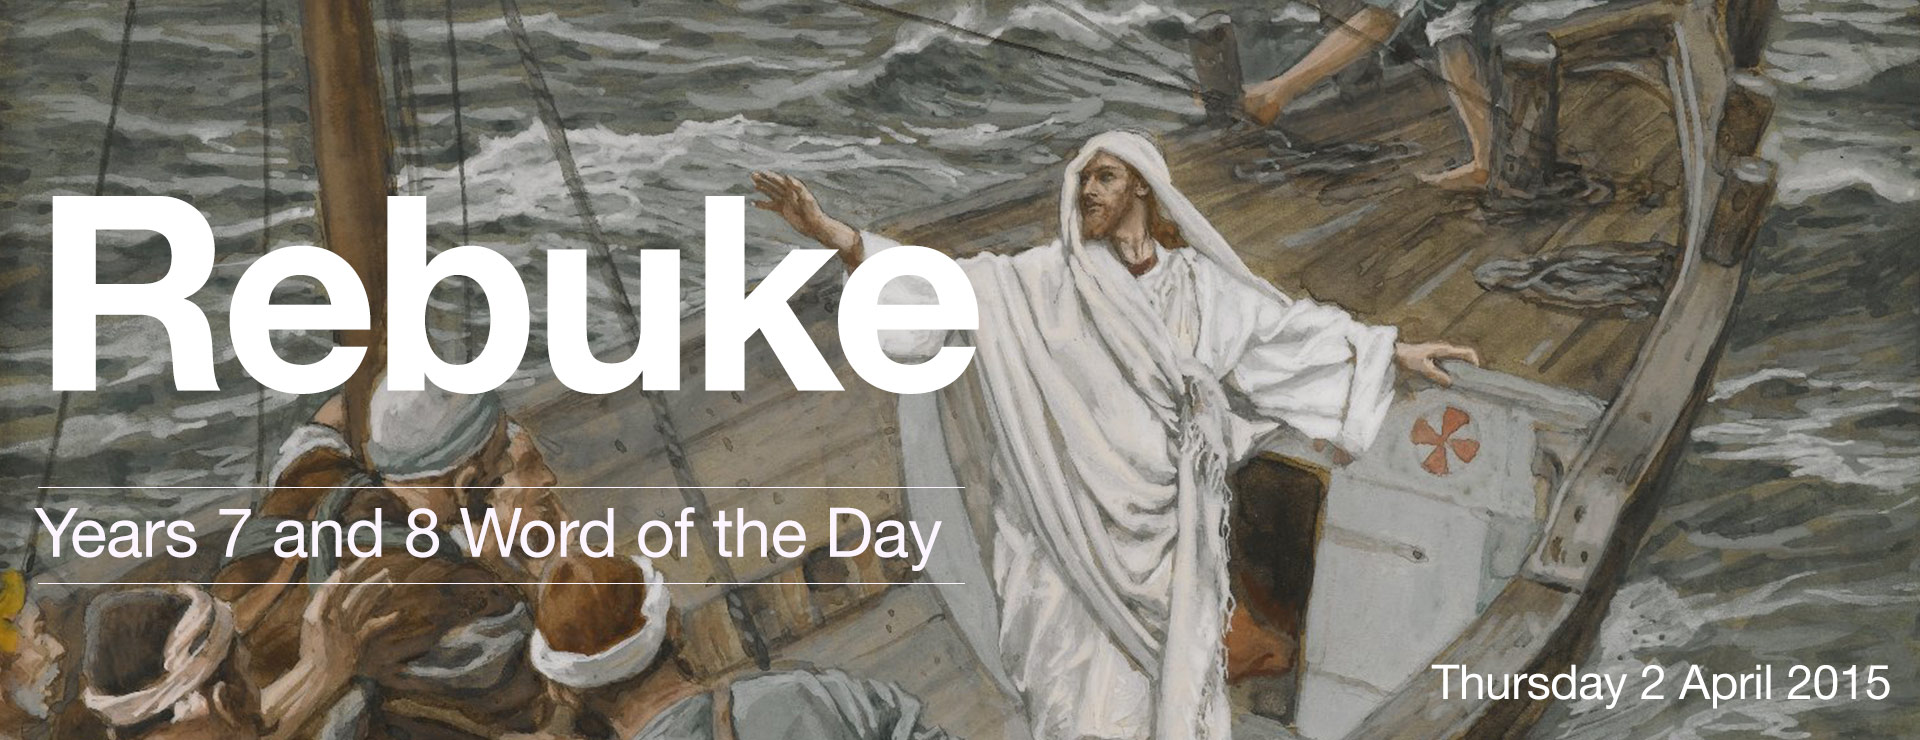 Word-of-the-Day-103.jpg